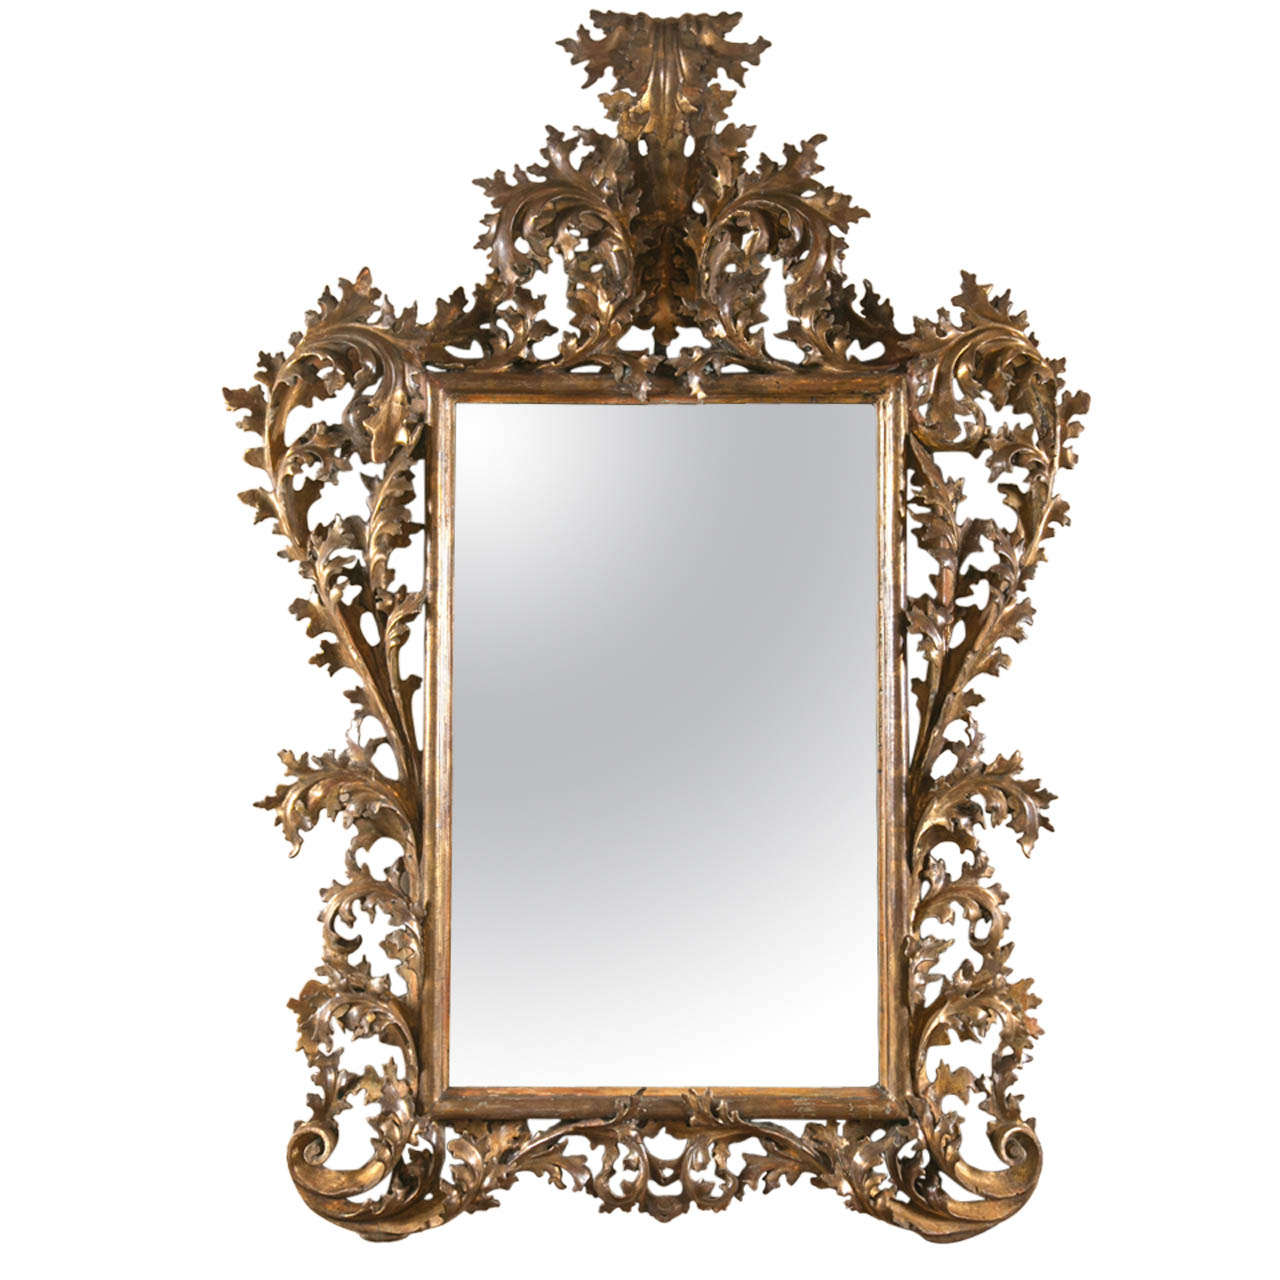 Mirrors & Wall Decor. items. Refine Your Results By: Sale & Clearance. BOGO Offers Pier 1 For Businesses. Furniture, decor and more for your professional space details. View Our Books. Check out our latest books to find out what's new, unique & on sale. See our latest book. Follow us. Pier 1 on Facebook; Pier 1 on Pinterest; Pier 1.